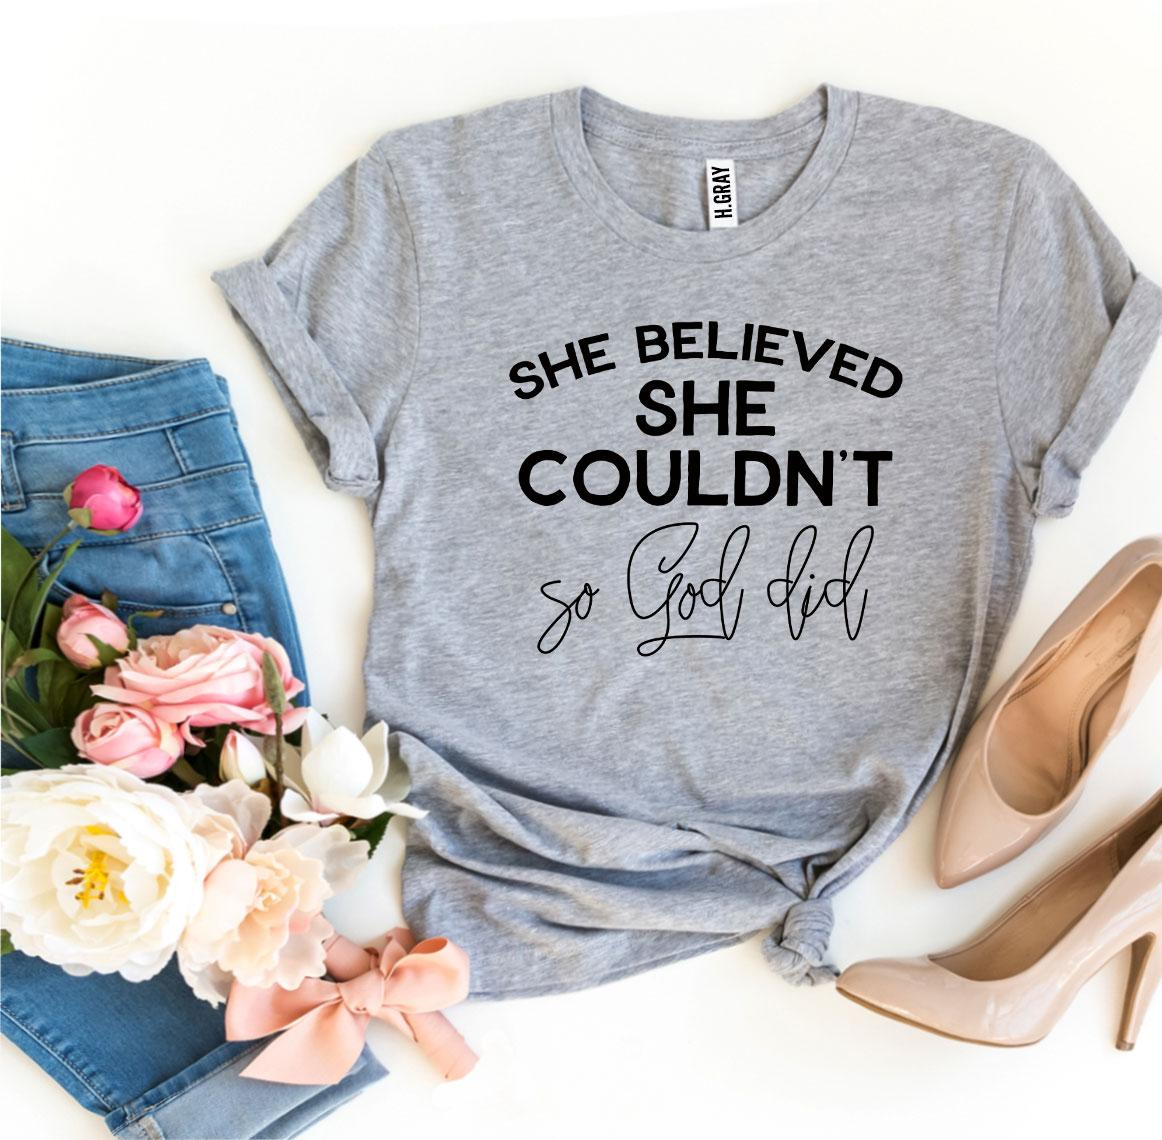 she believe she couldn't so God did, God, Yahuah, Elohim, she couldn't, God can, ladies, women, woman, girls, tee, t-shirt, ladies, apparel, clothing, heather gray, peach, mauve, navy, black, yellow, white, heather olive, sunset, peach, pink, dark gray, royal blue